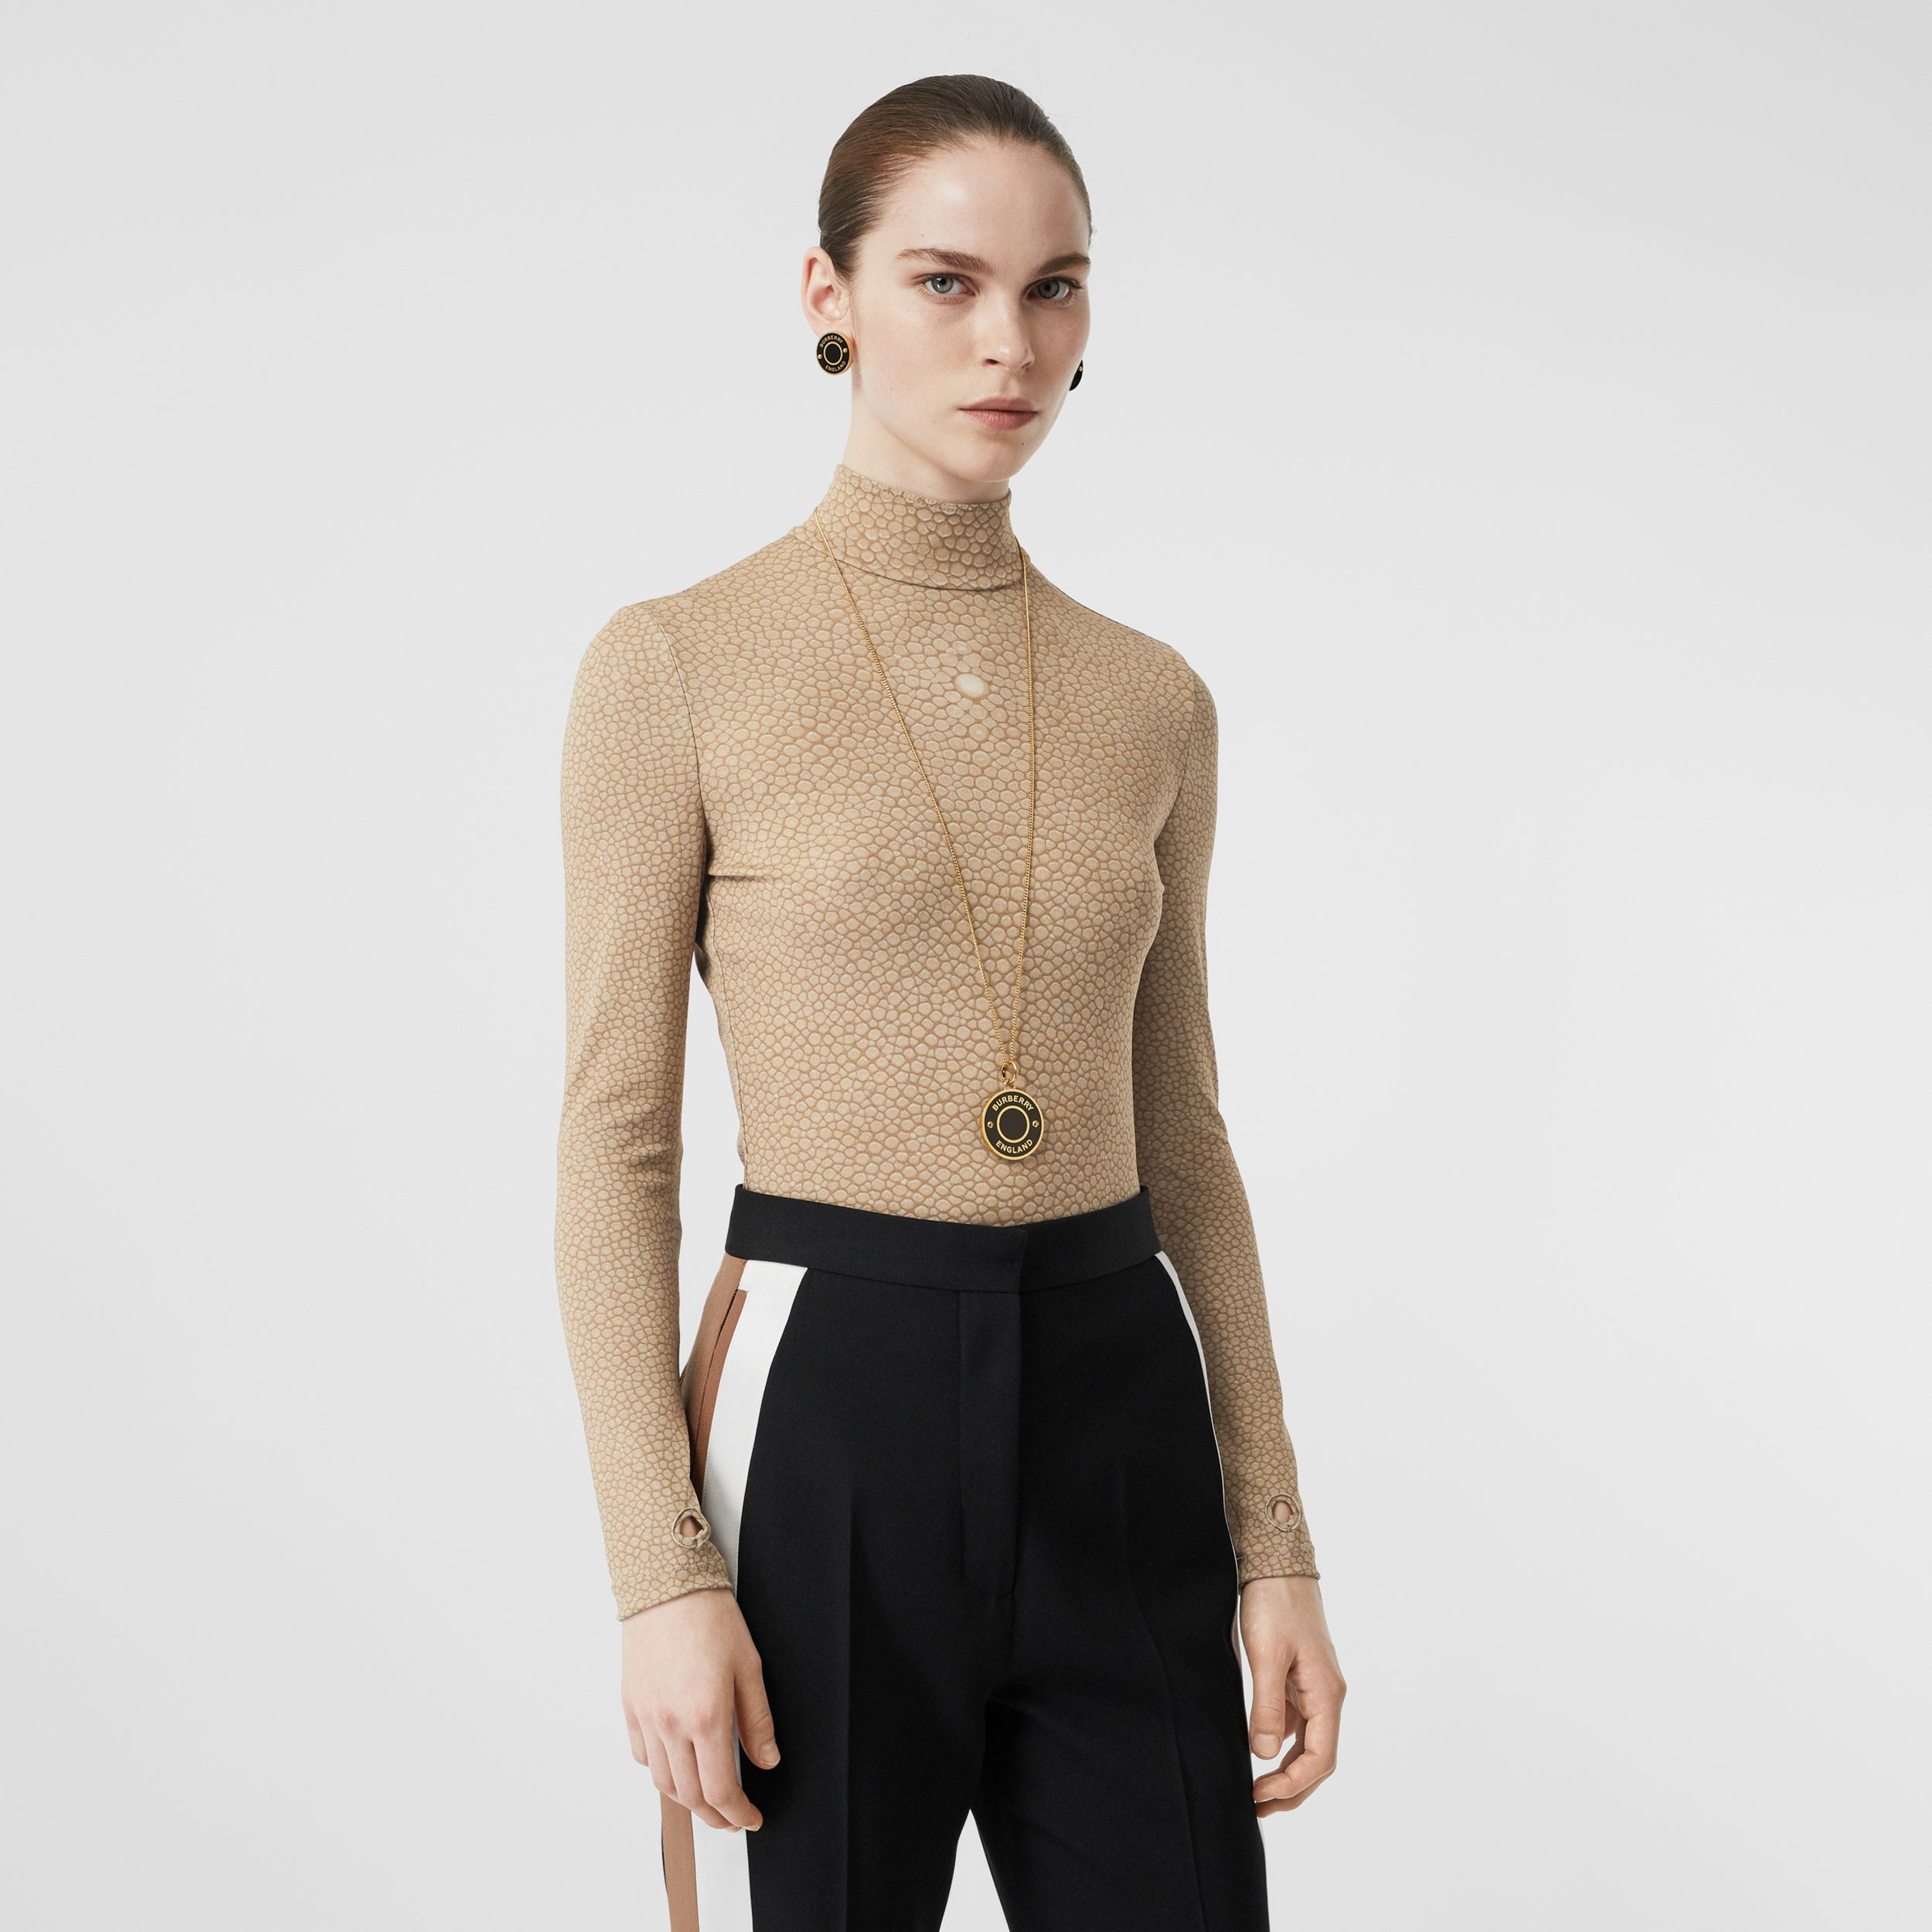 Fish-scale Print Stretch Jersey Turtleneck Top in Light Sand - Women | Burberry - 1